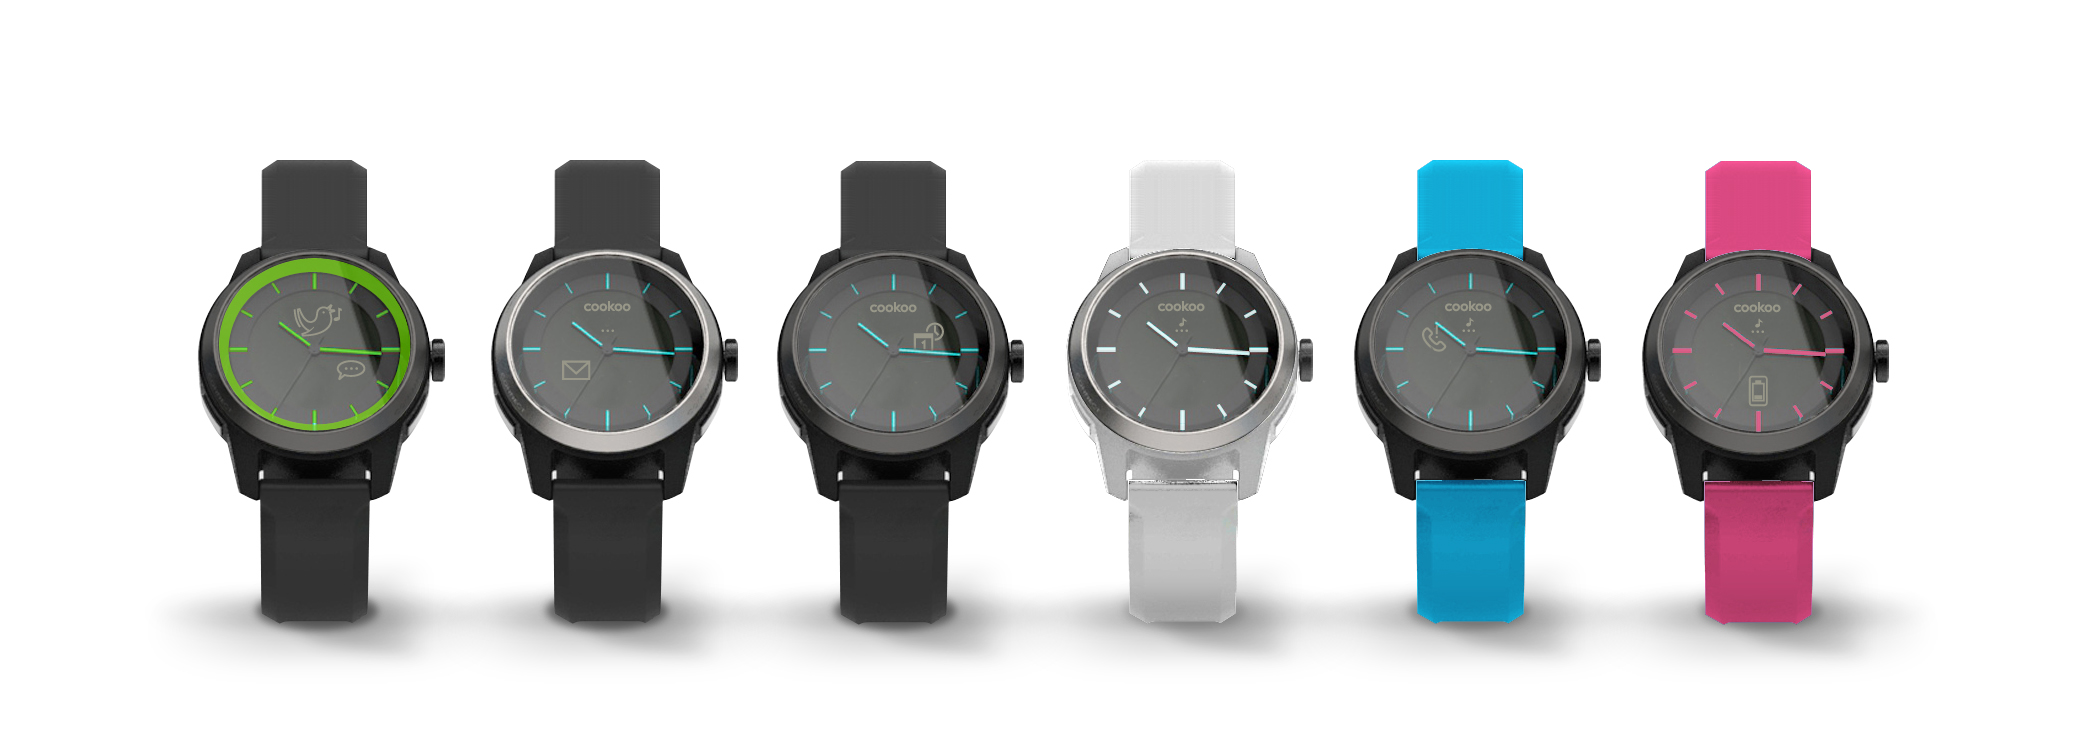 Cookoo the Connected Watch comes in different colors to suit your style.